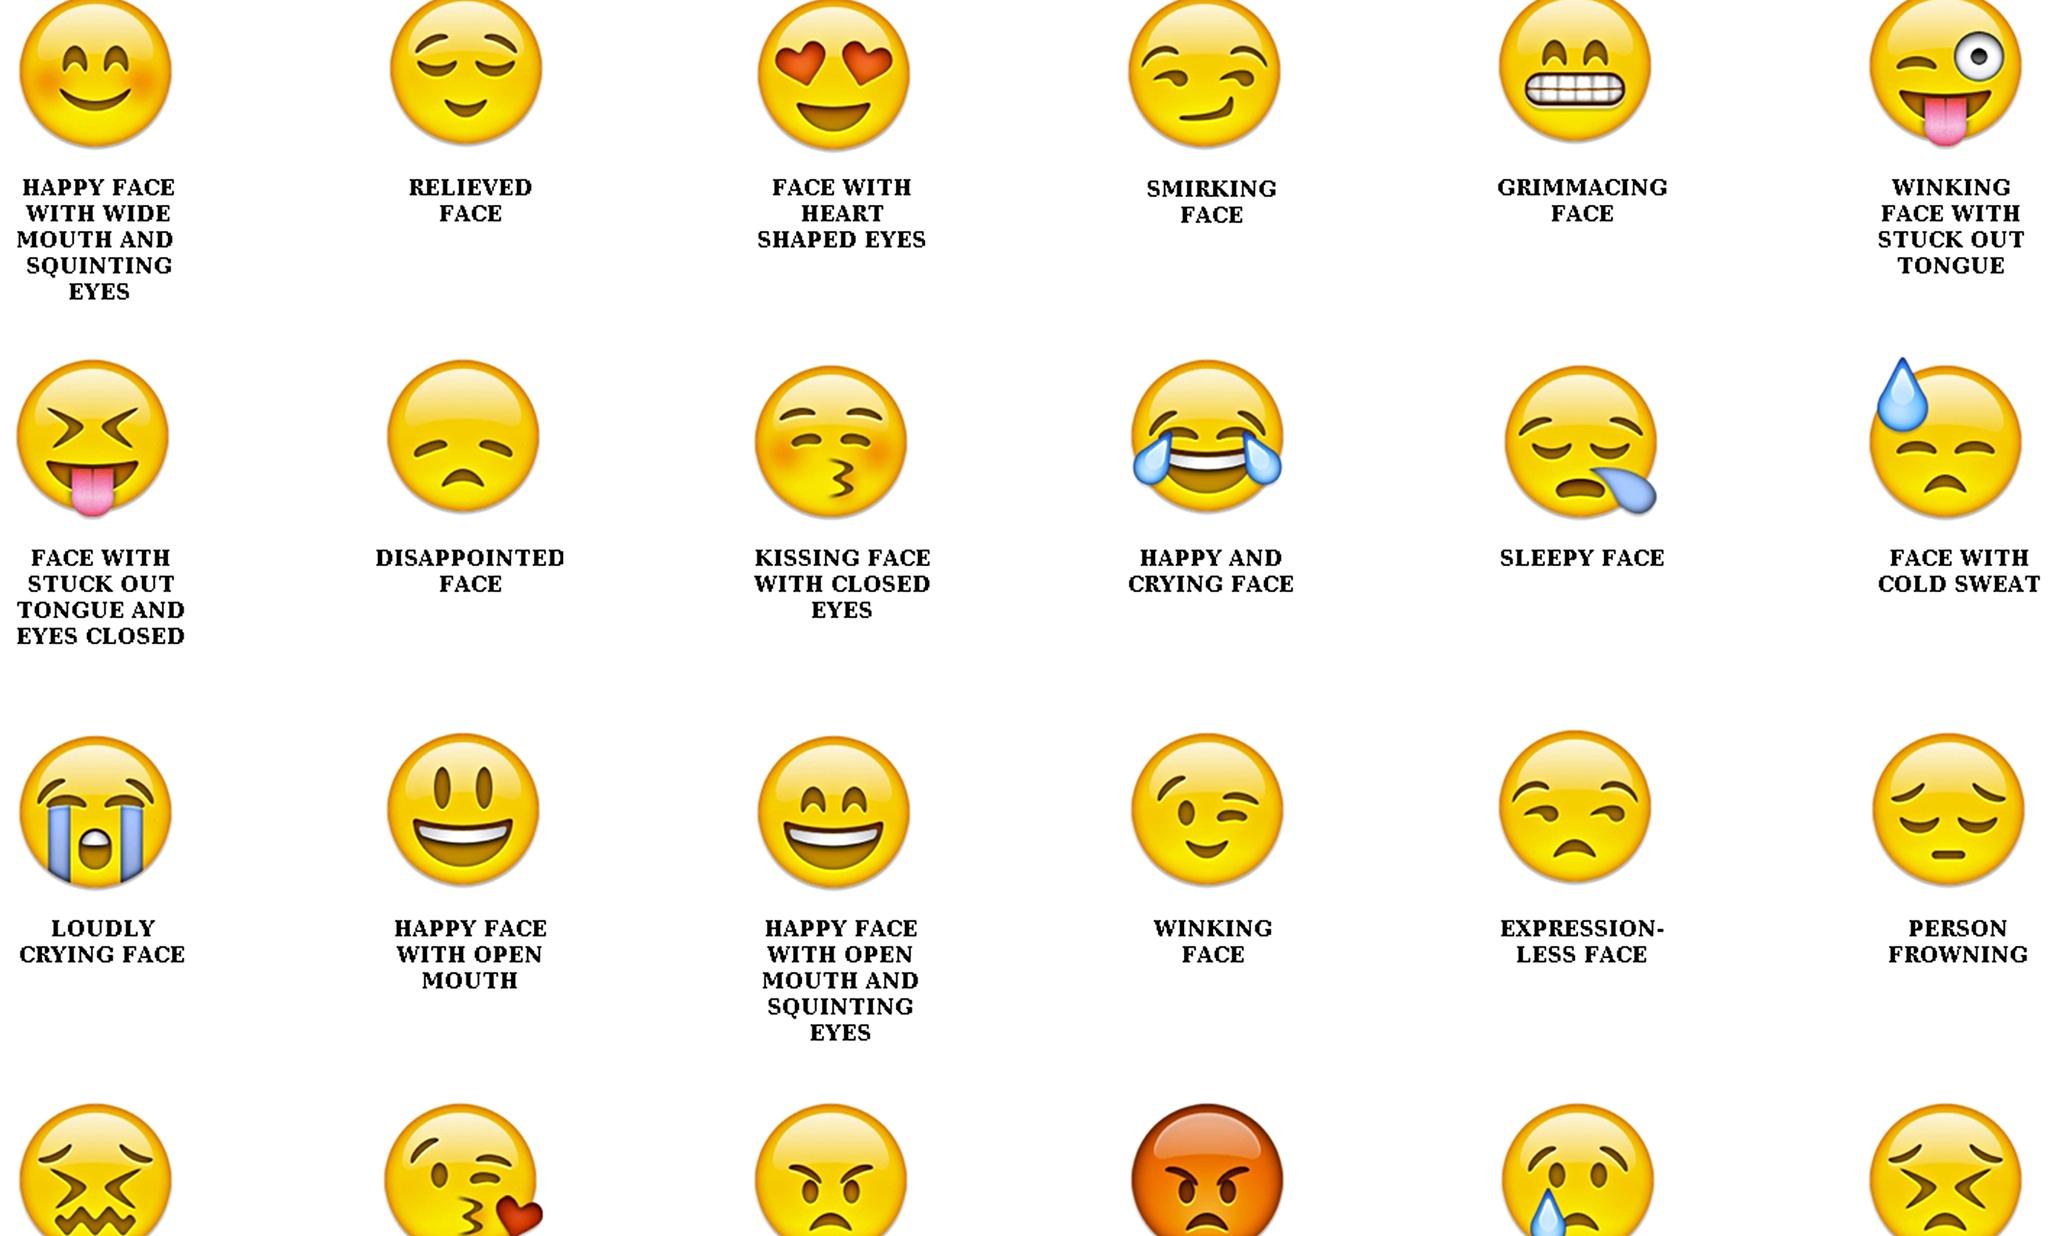 What your country's emoji use says about you | Arwa Mahdawi ...